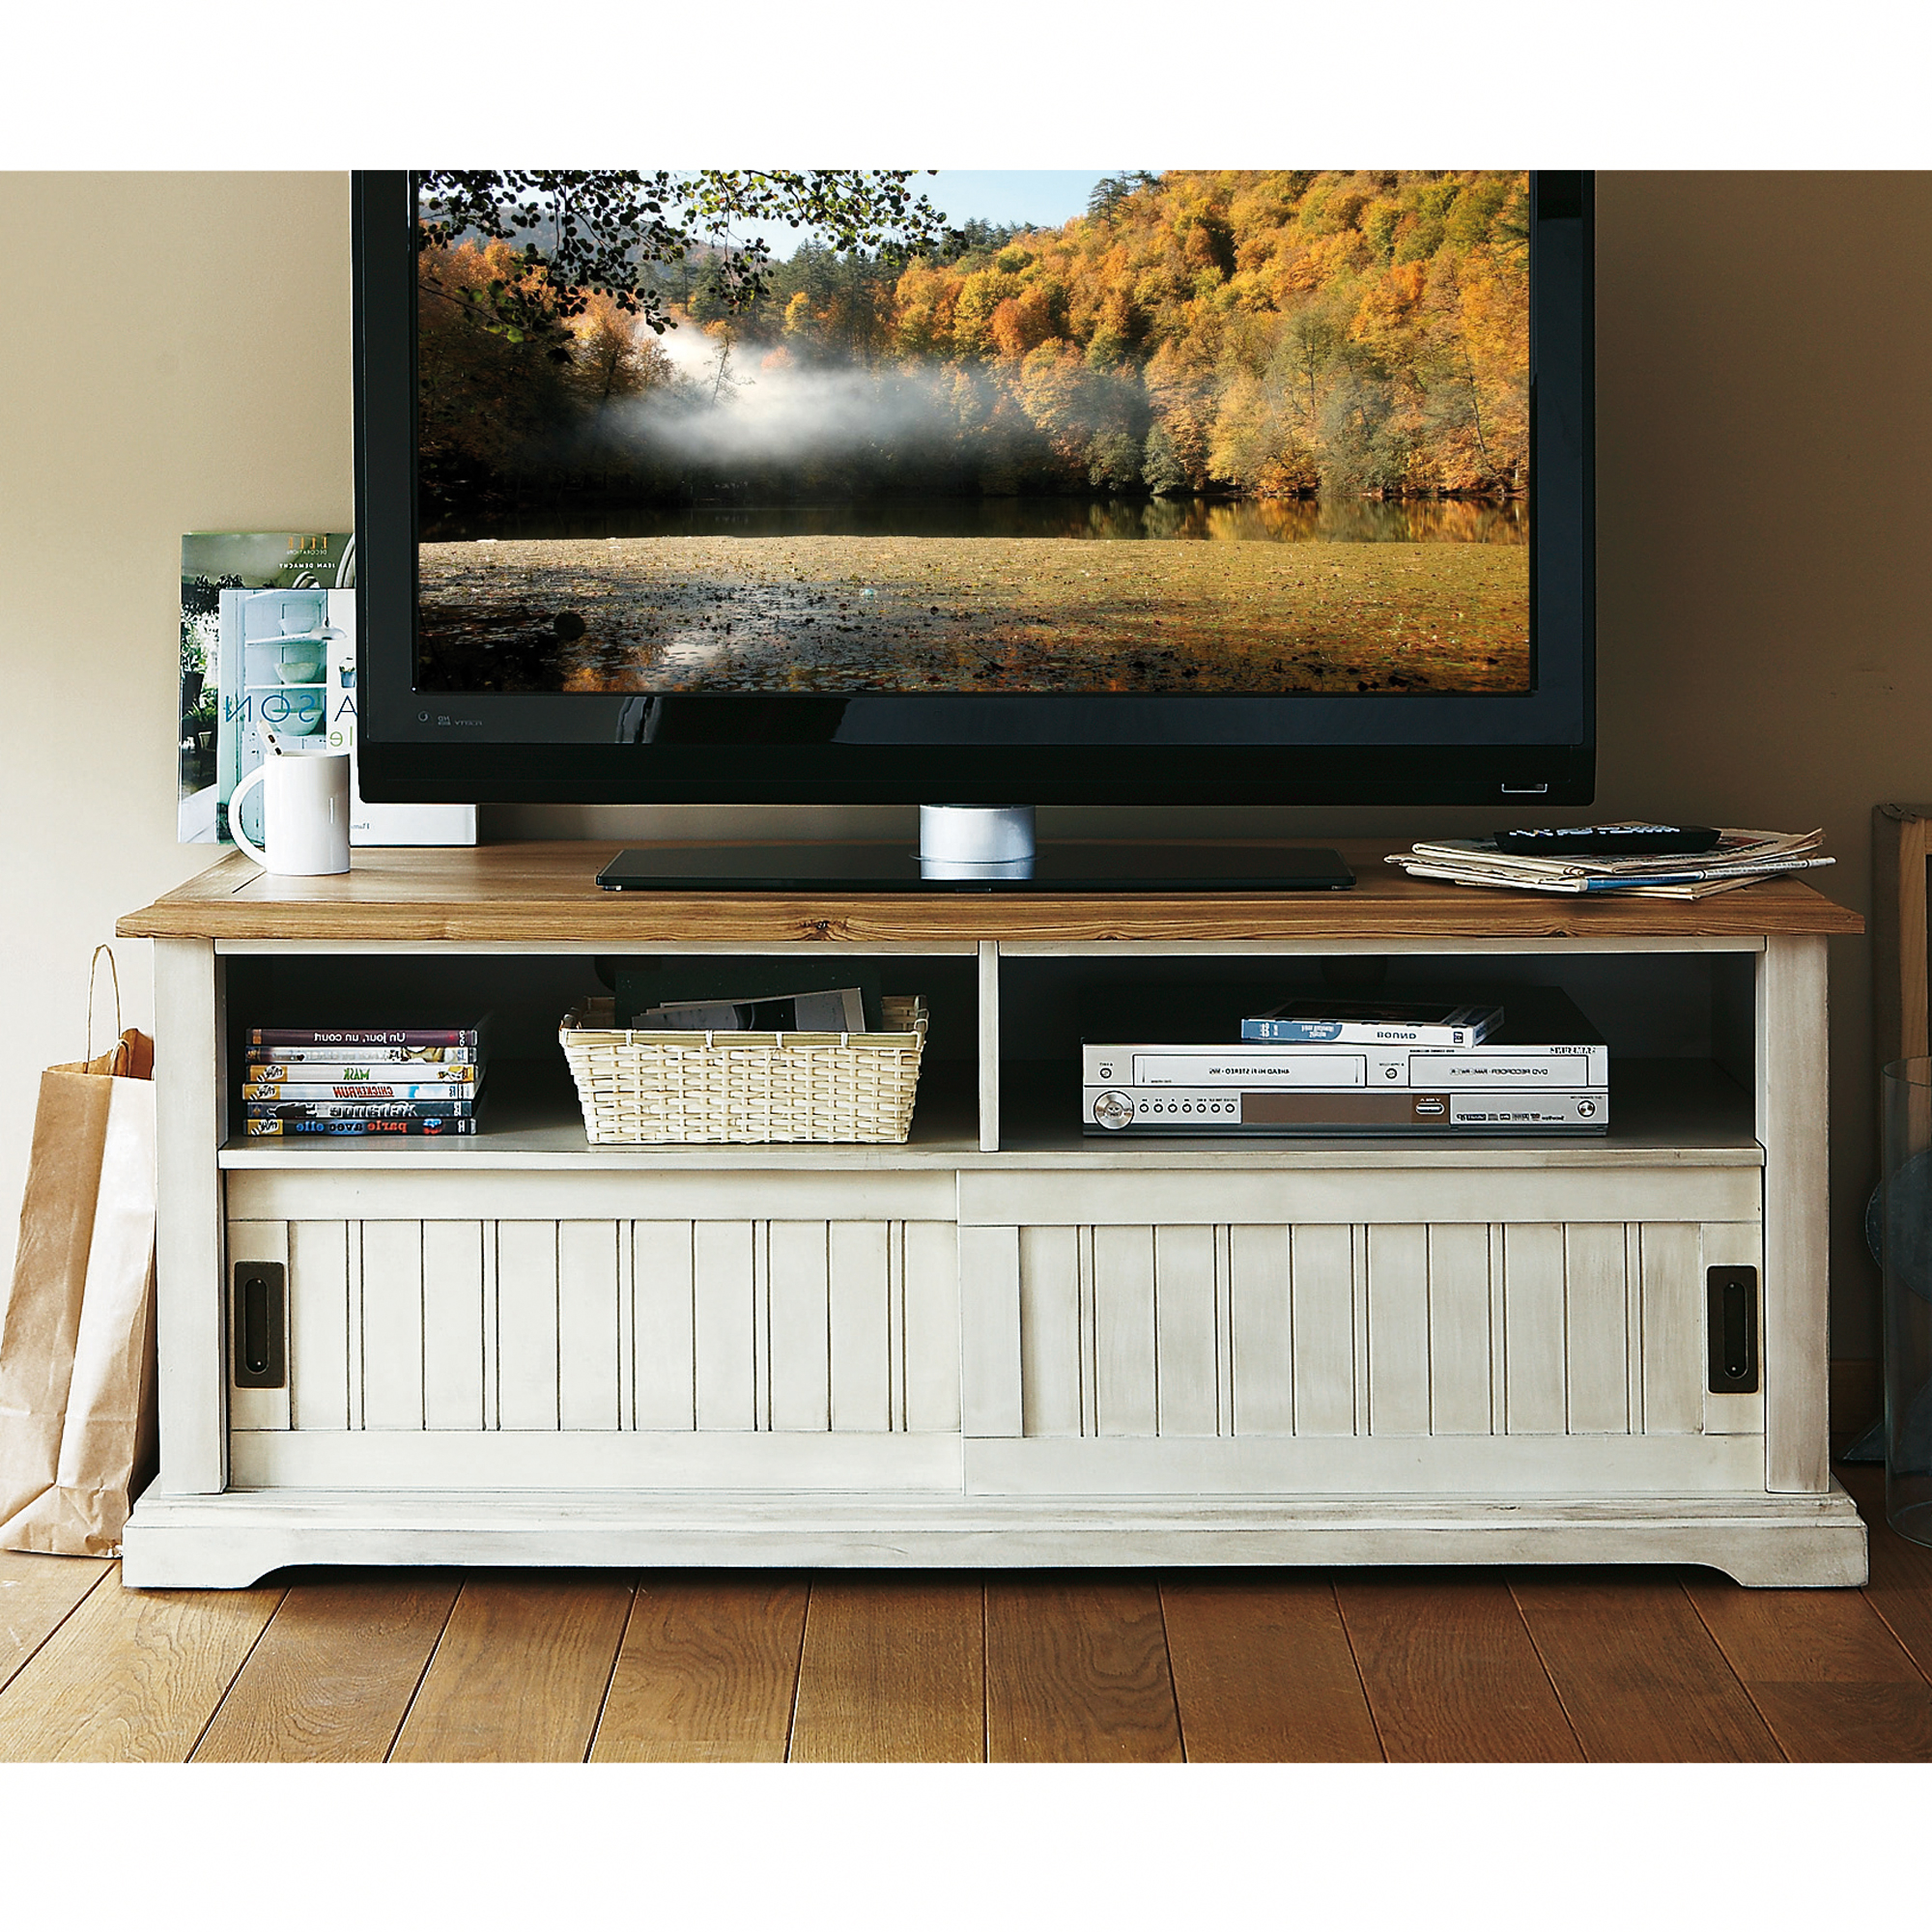 Tv ecran plat blanc images for Meuble tv ecran plat